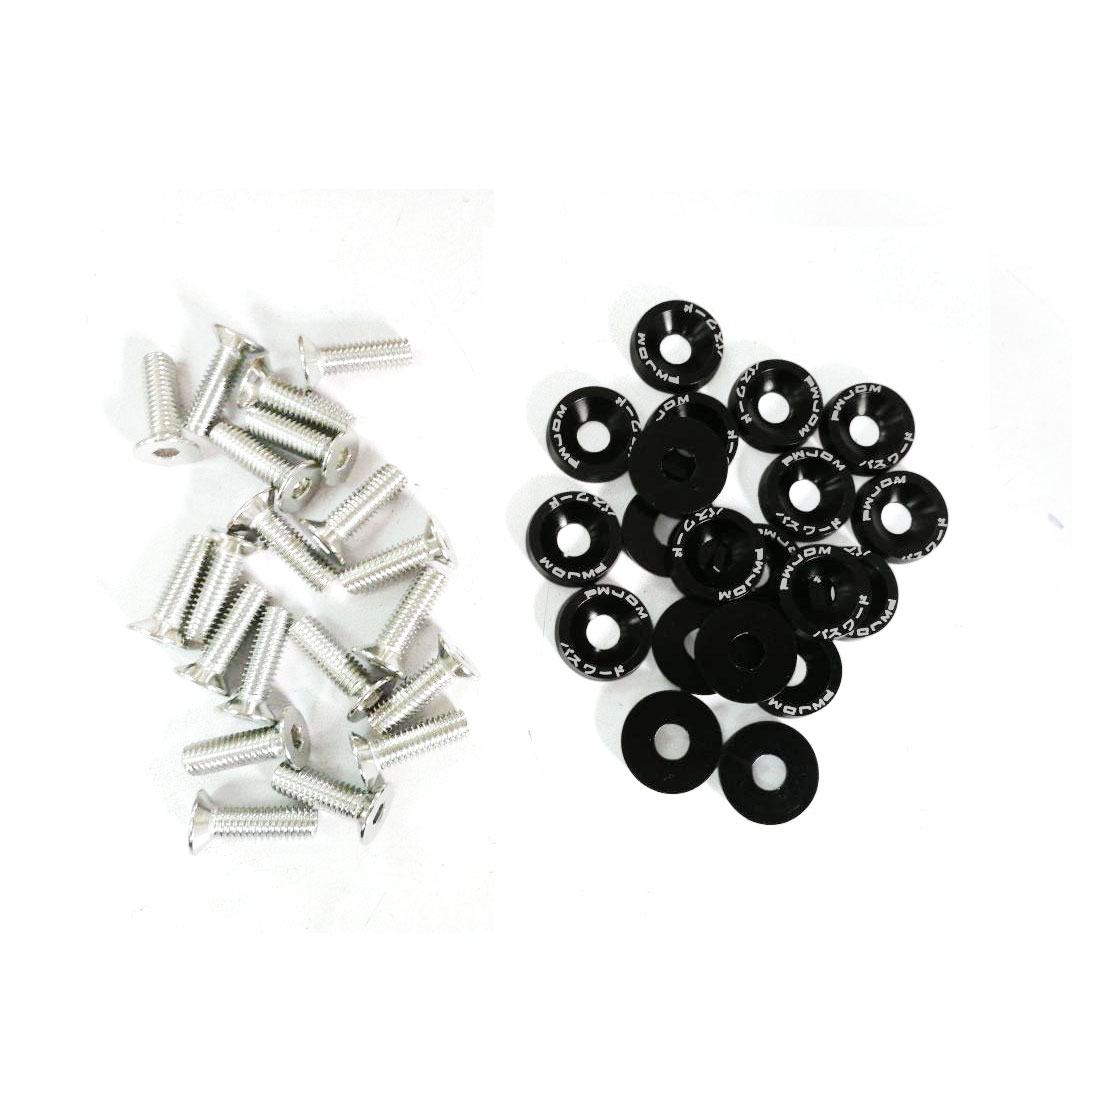 20 Pcs Silver Tone Black Car Decorative License Plate Bolt Screw